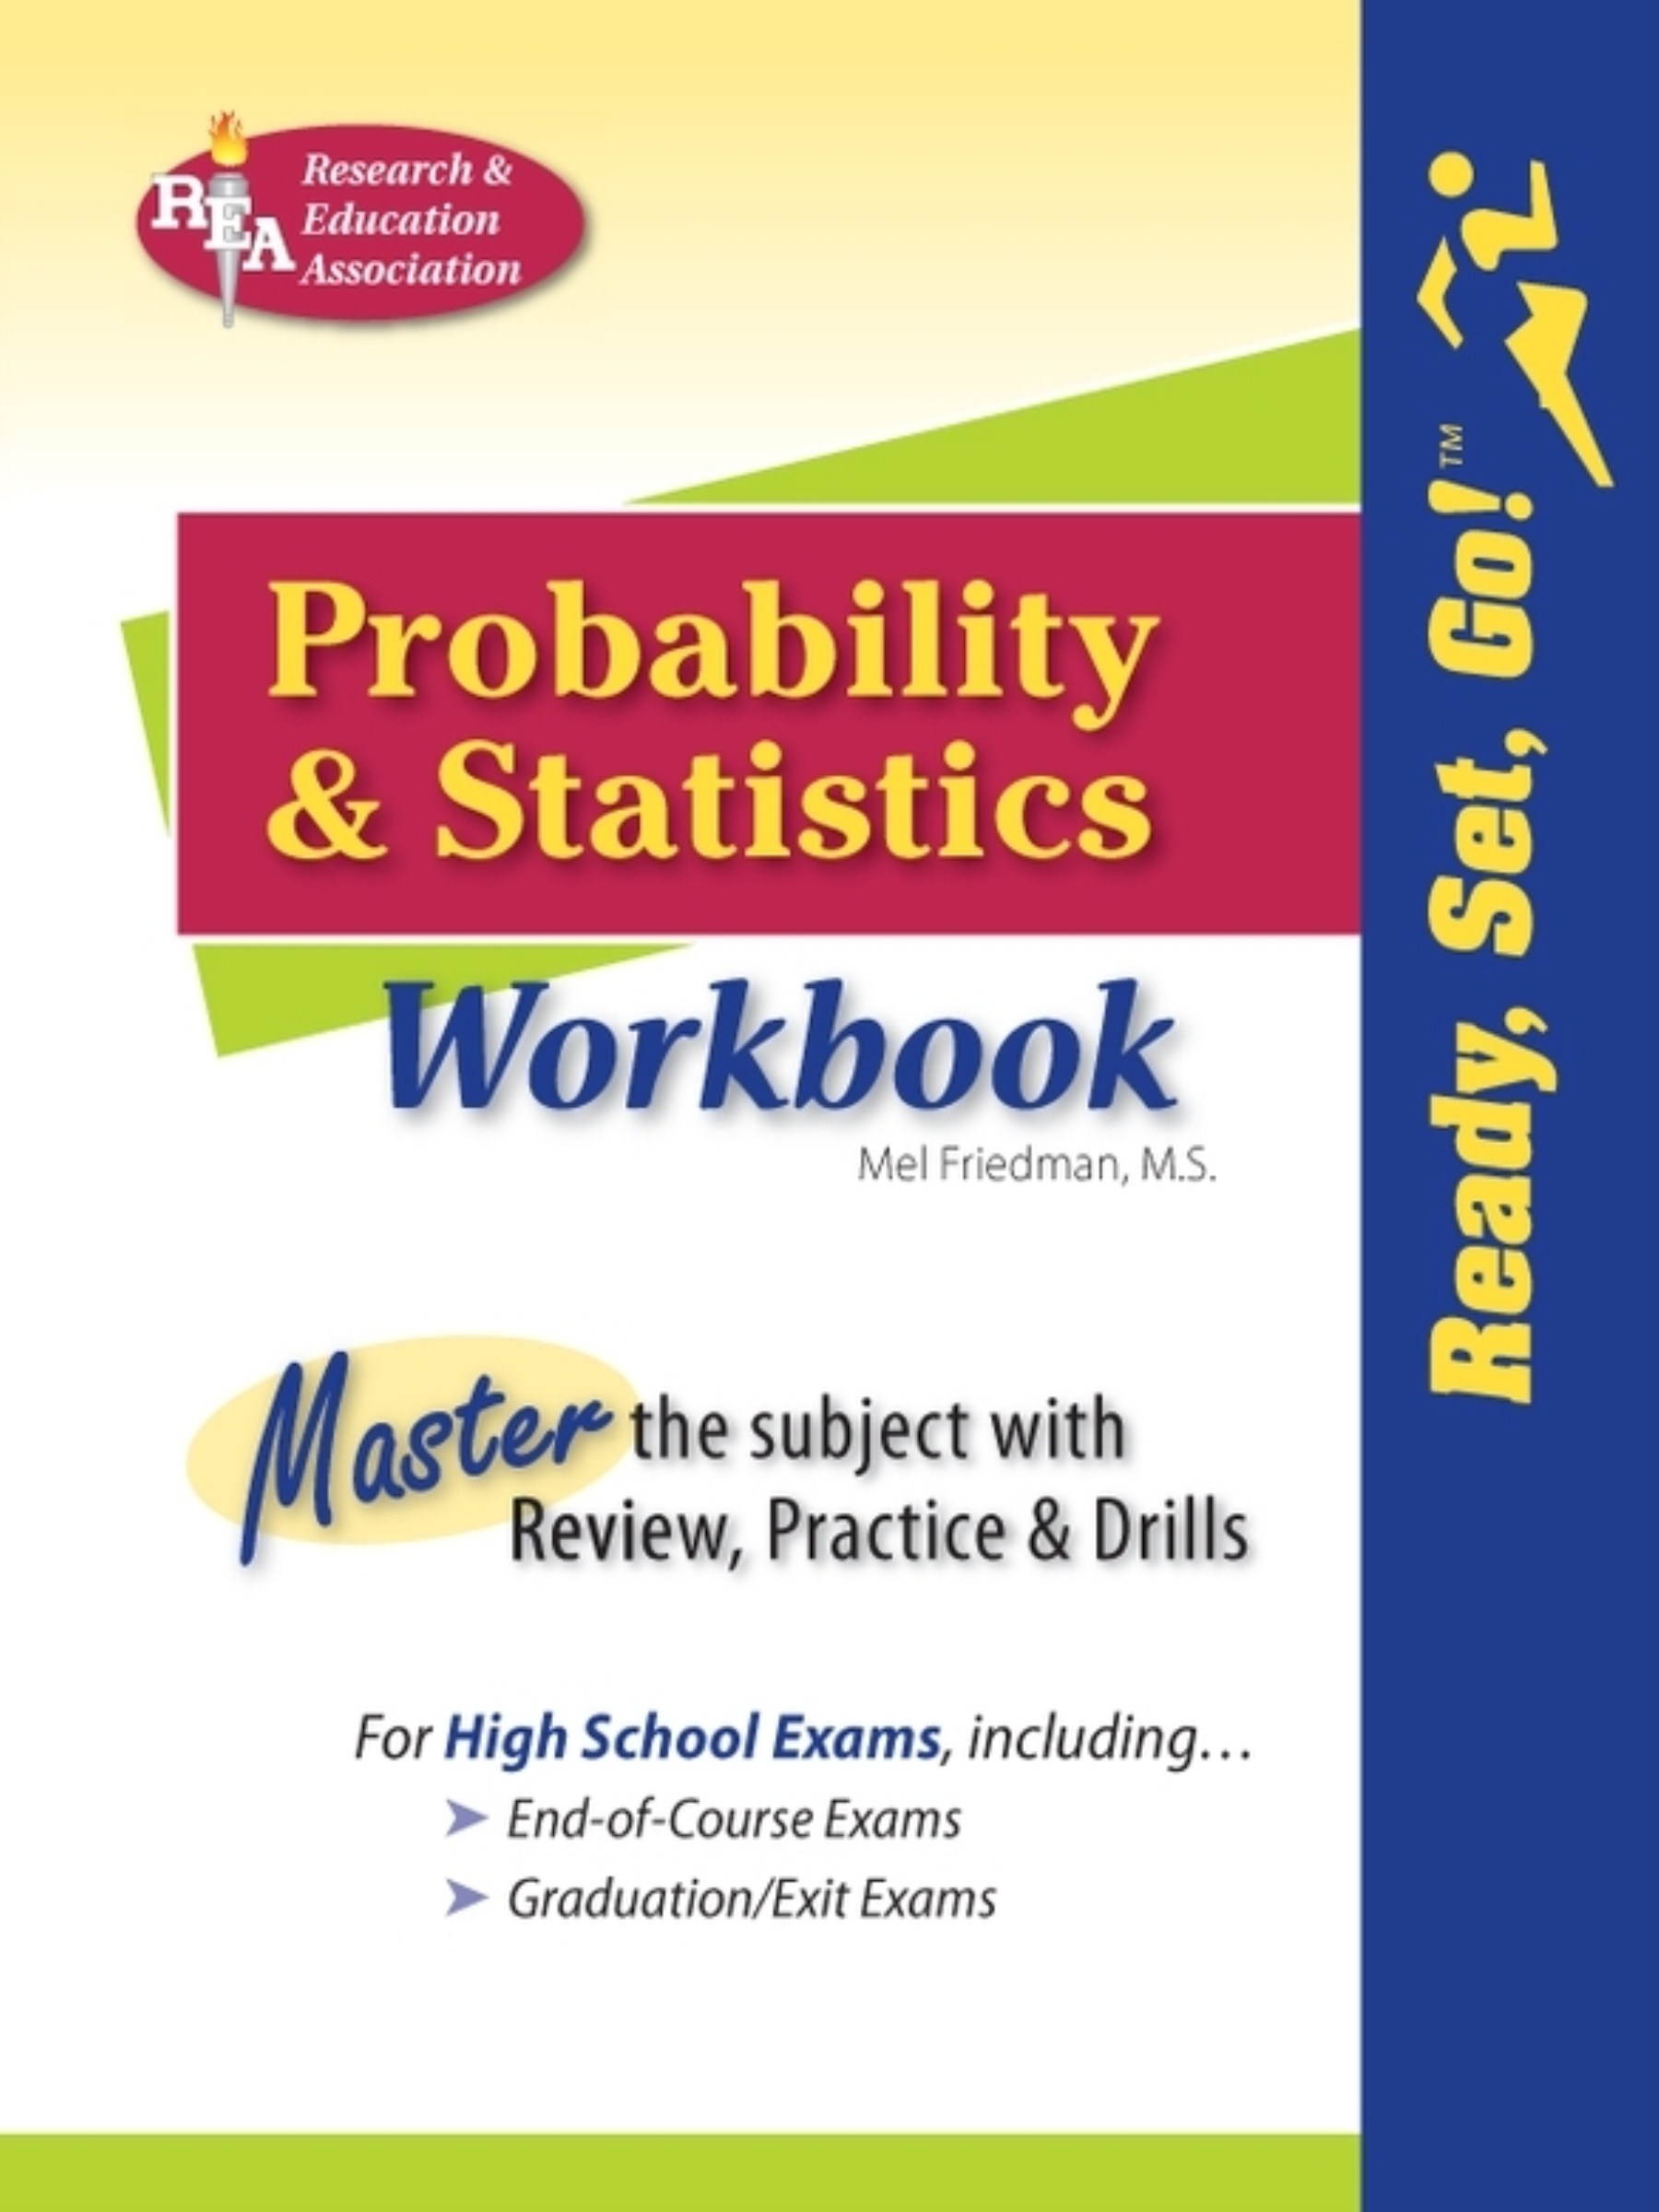 Probability and Statistics Workbook